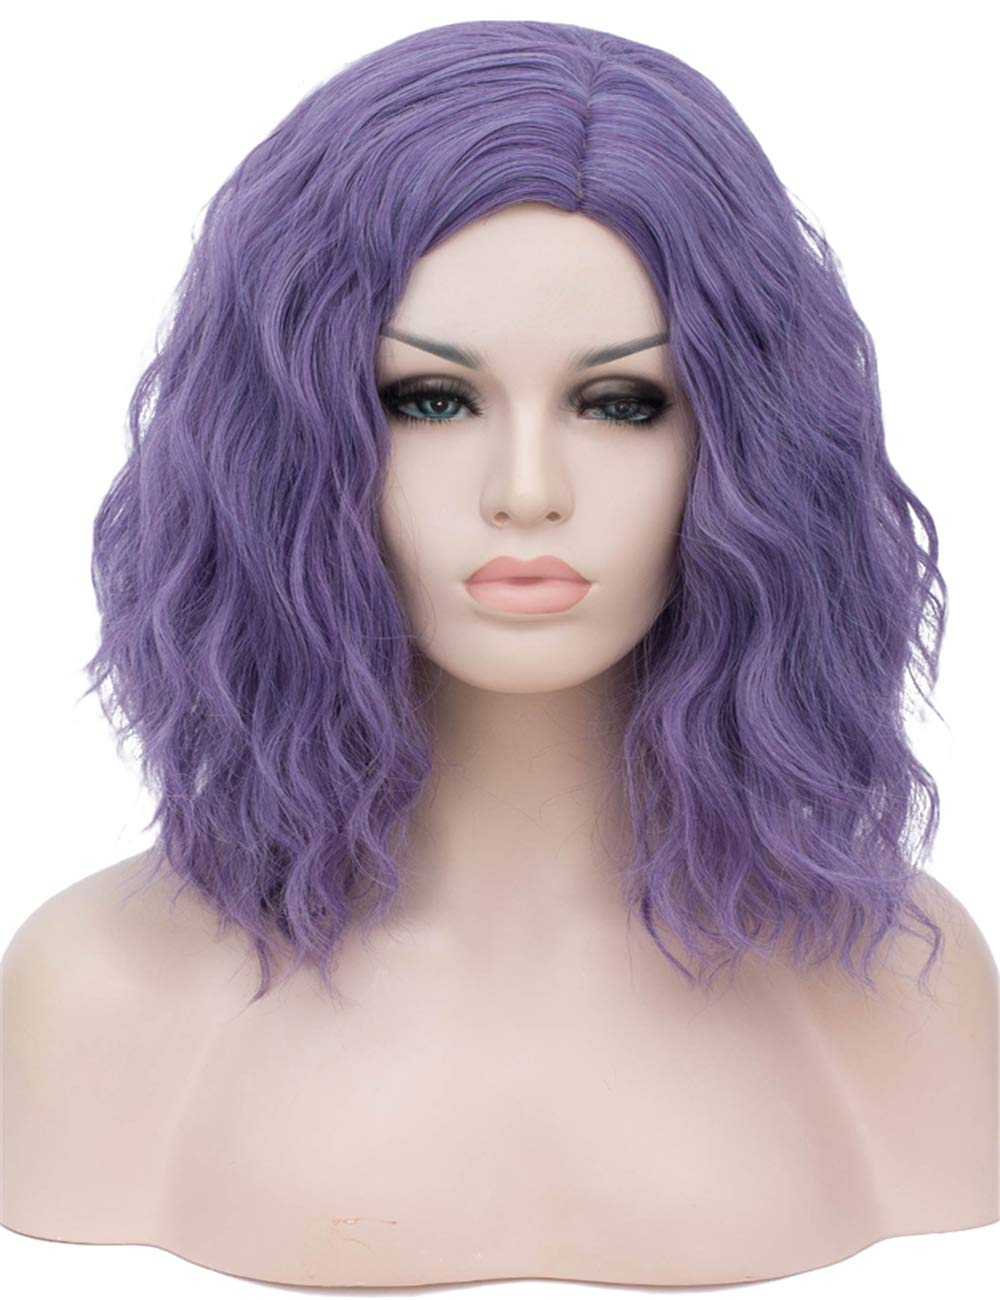 """TopWigy Purple Gray Cosplay Wig Medium Length Curly Wave Colorful Synthetic Heat Resistant Hair Wigs Costume Party Anime Fun Bob Wigs for Women (Purple Gray 16"""")"""